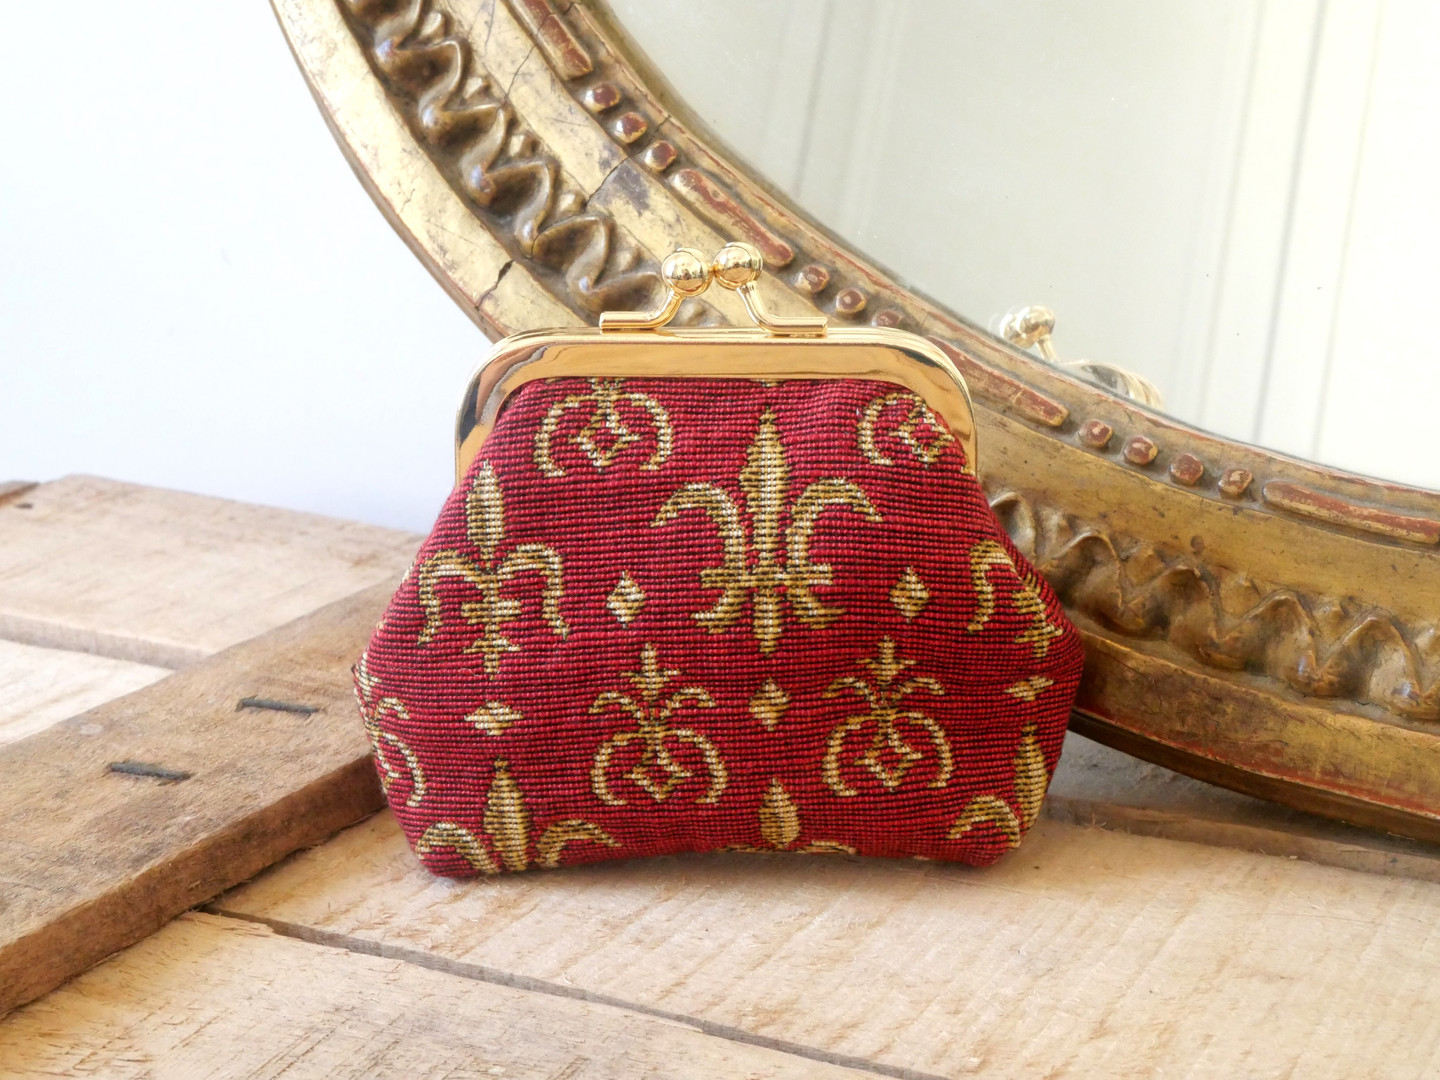 "Porte-monnaie retro de la collection ""Fleurs de lys fond rouge"" (ref 402.83) Royal Tapisserie / coin purse tapestry"